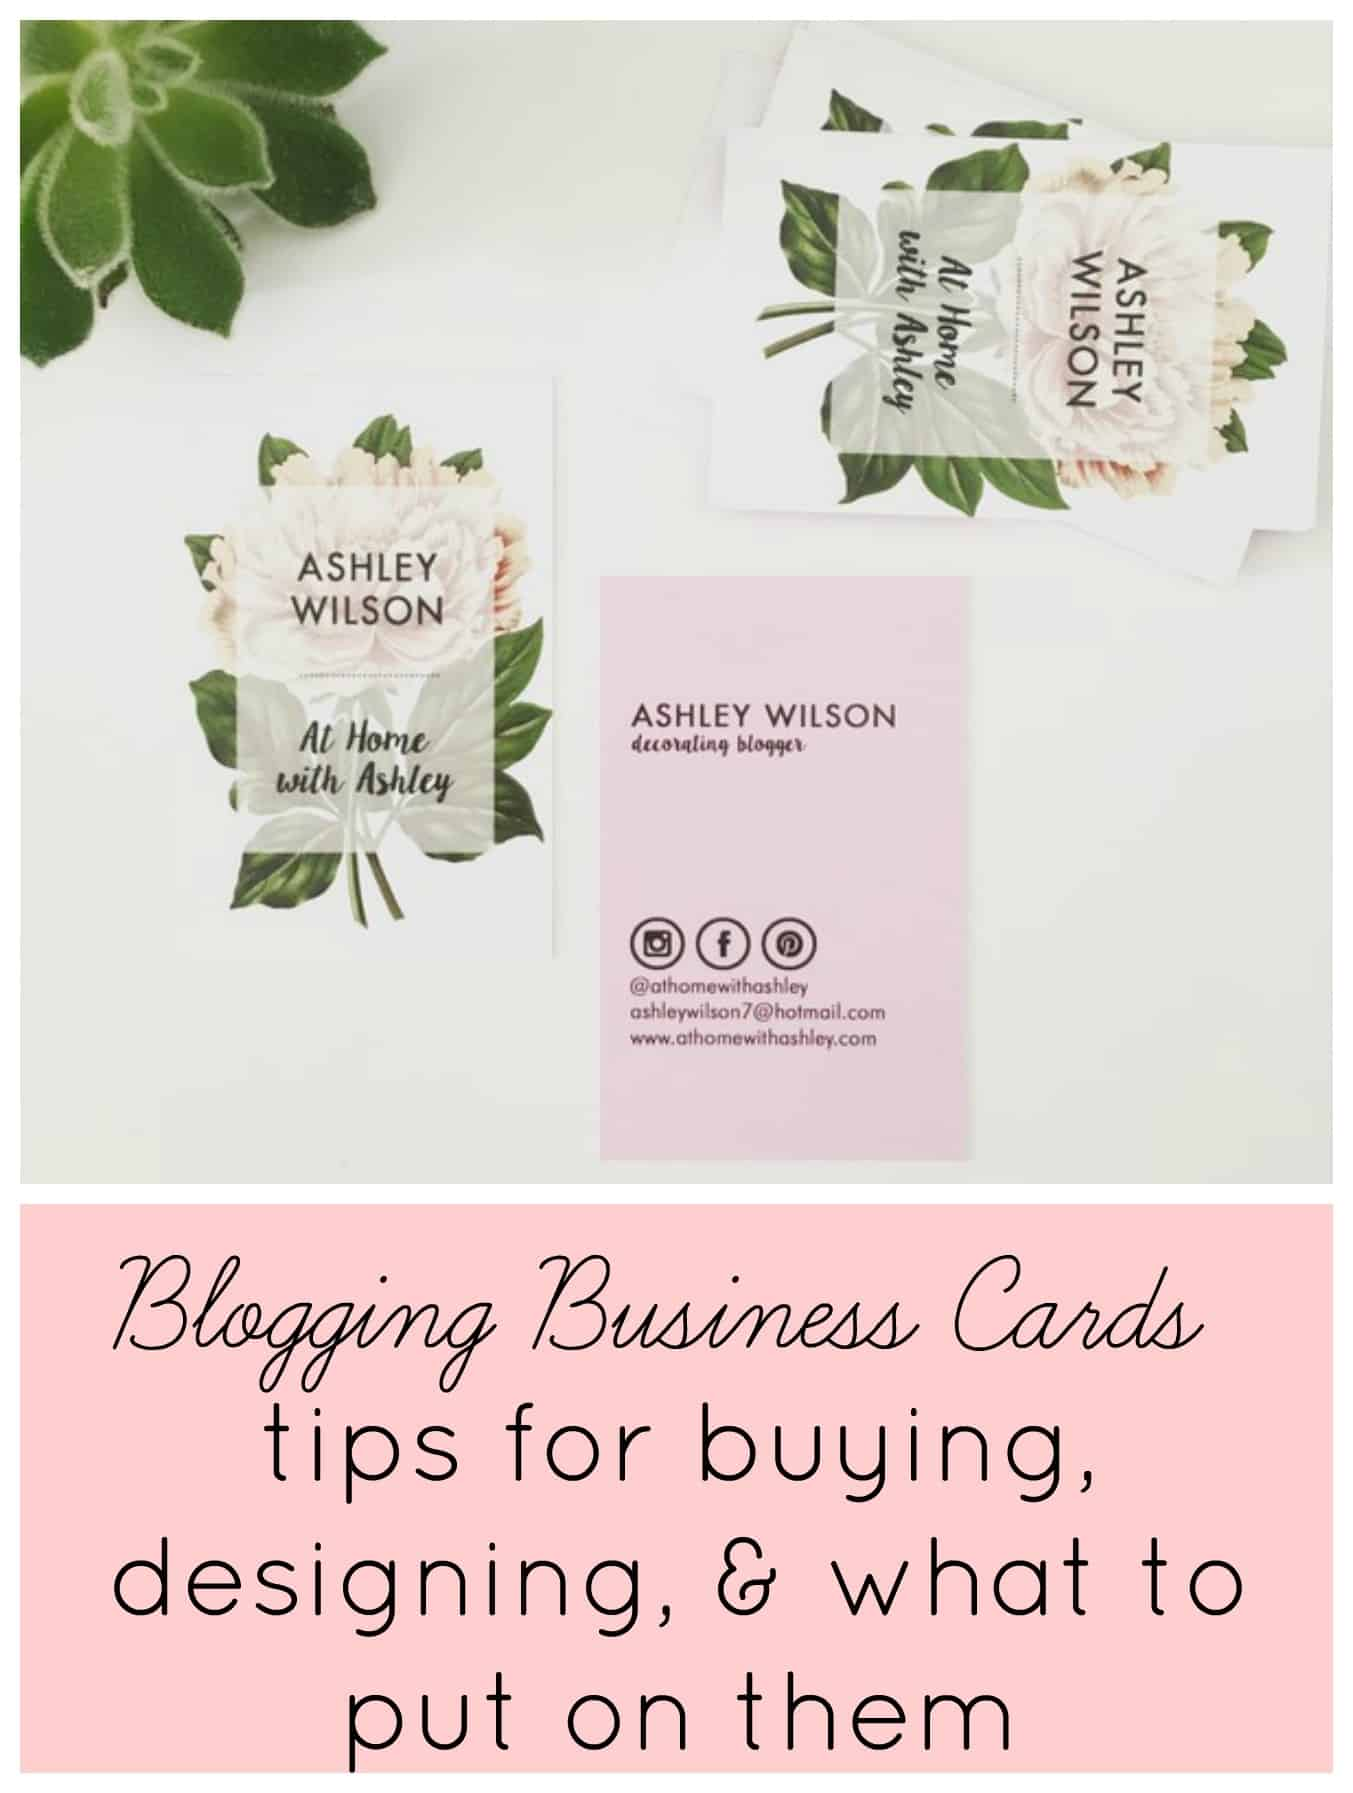 blogging business cards- tips for buying, designing, & what to put ...